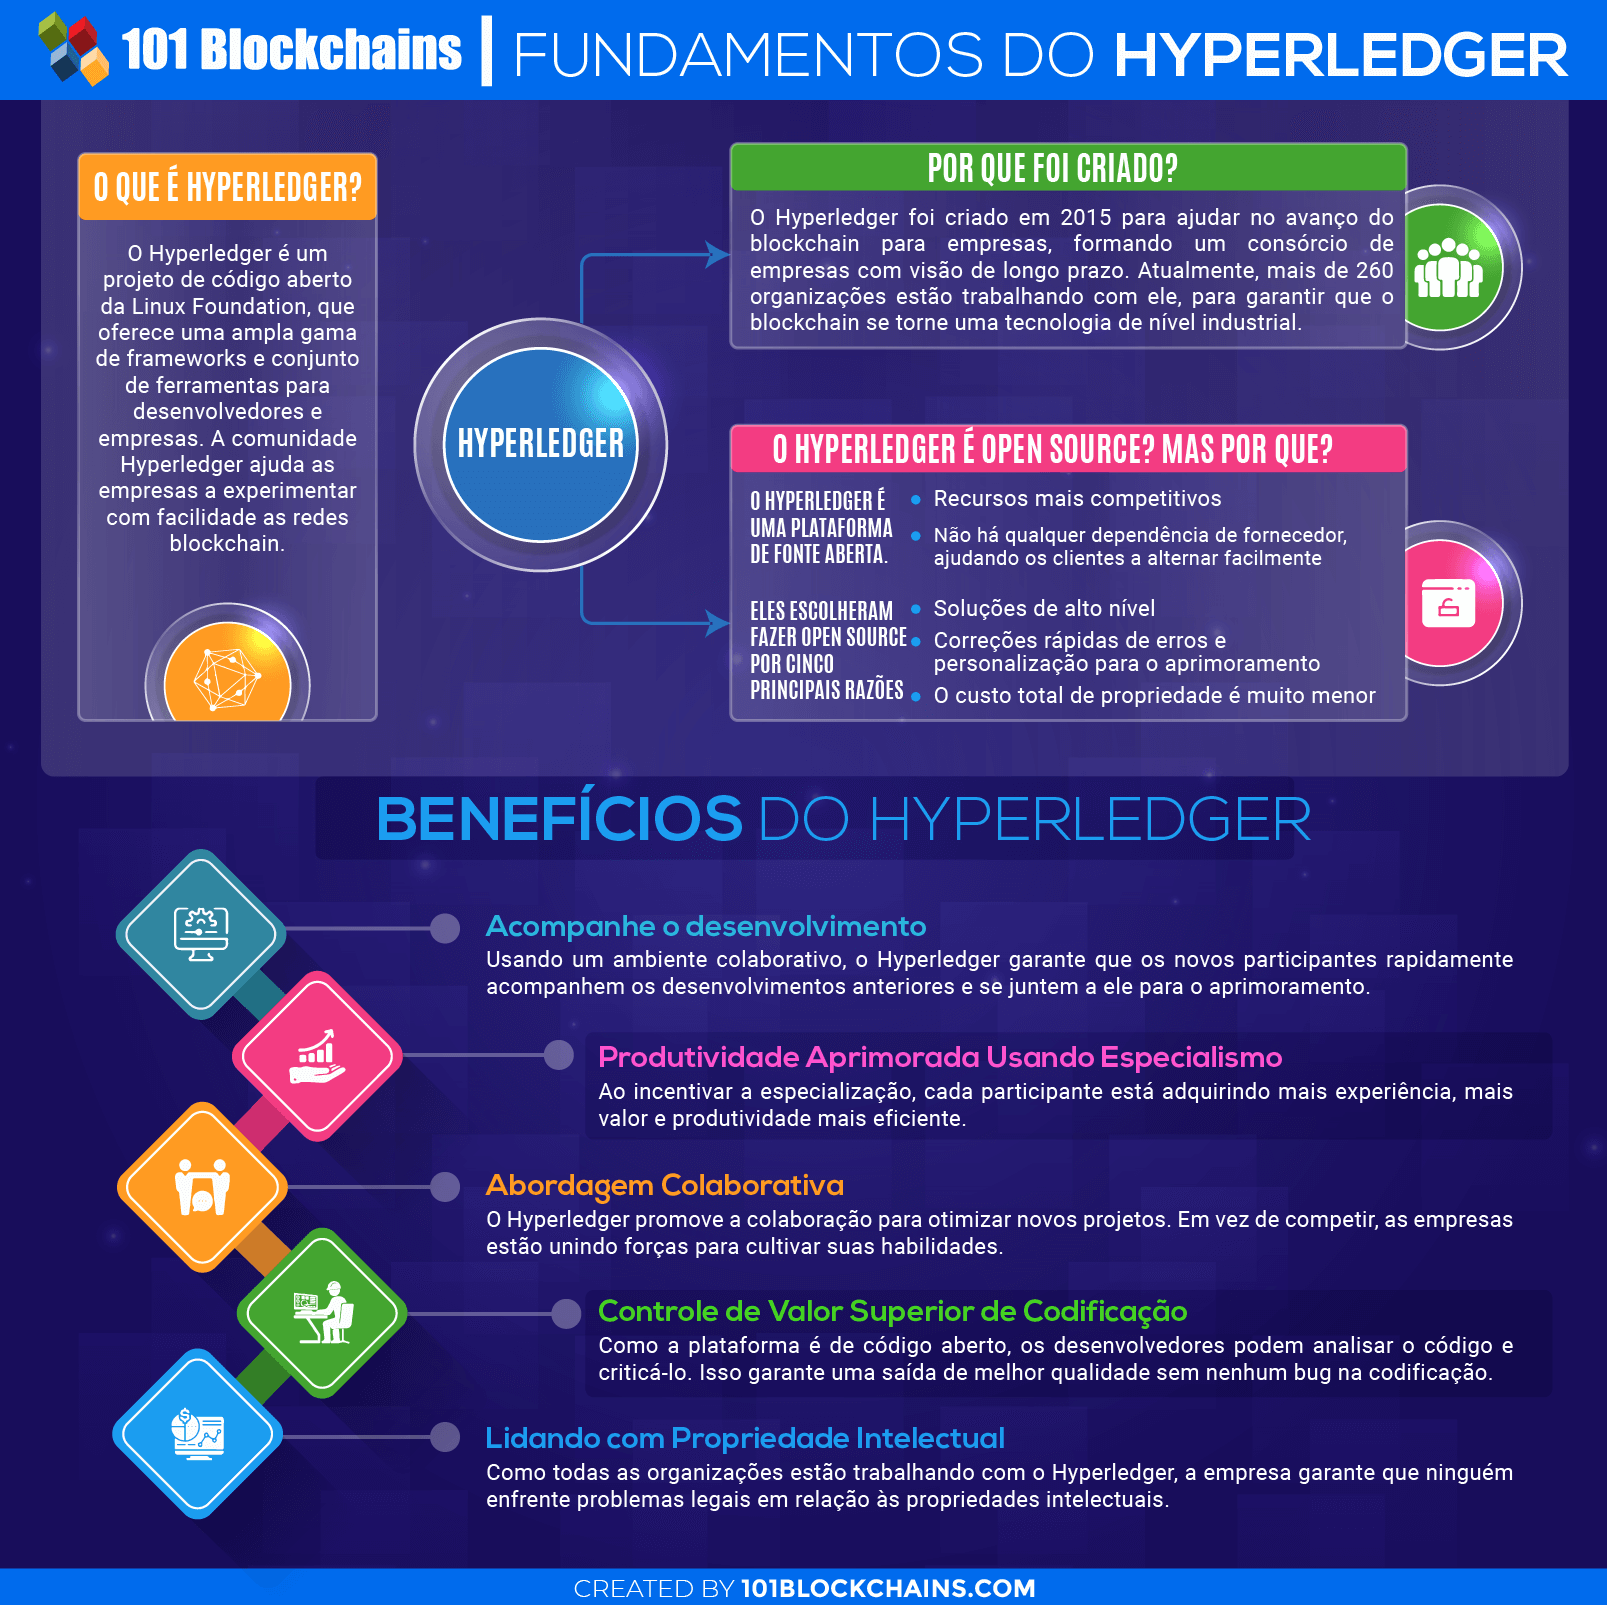 Fundamentos do Hyperledger